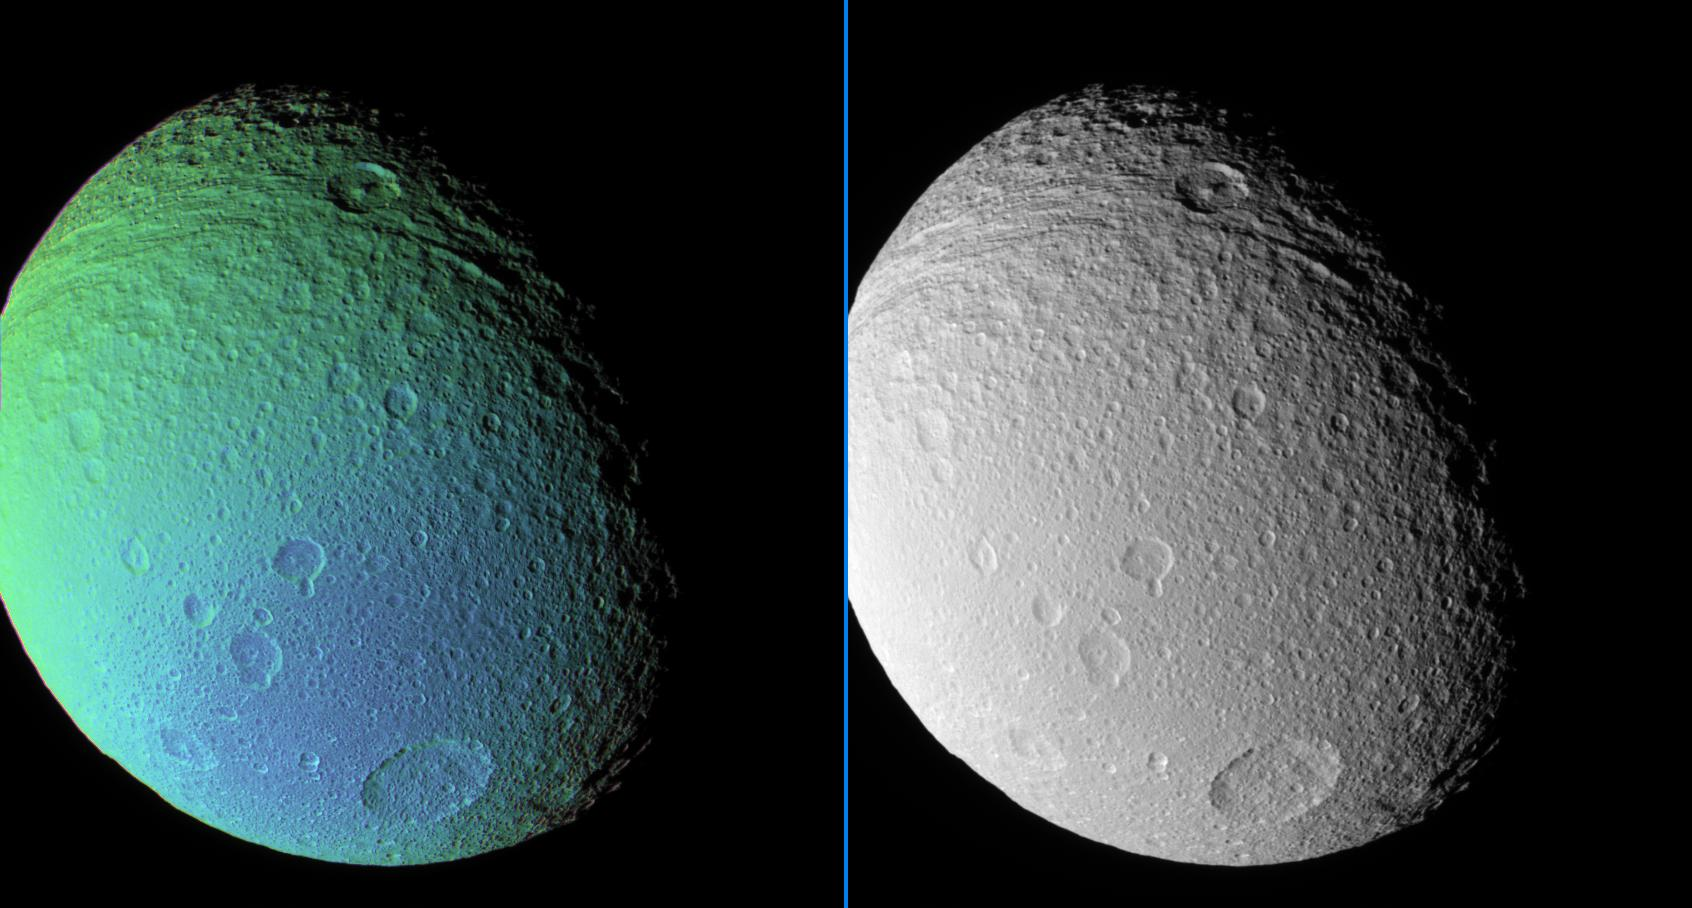 Tethys in false-color and monochrome view